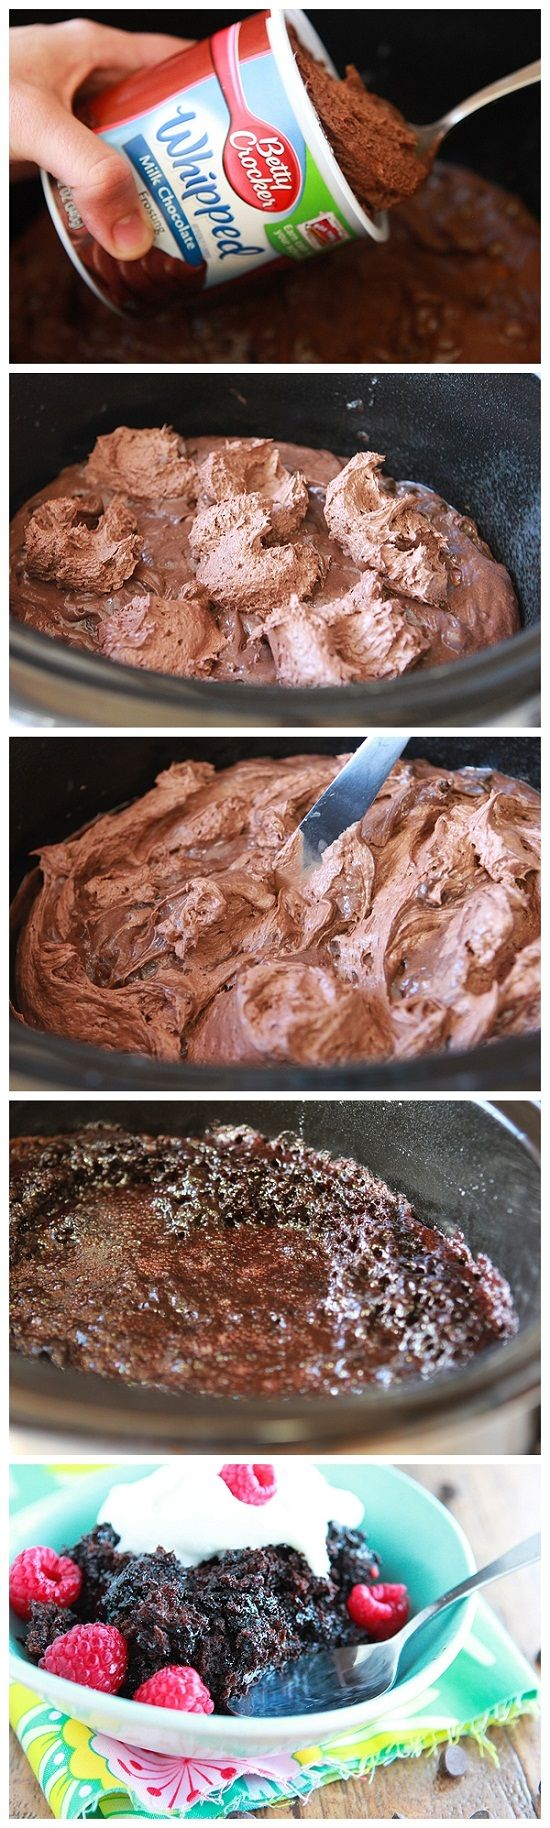 Lavalicious Slow Cooker Triple Chocolate Cake